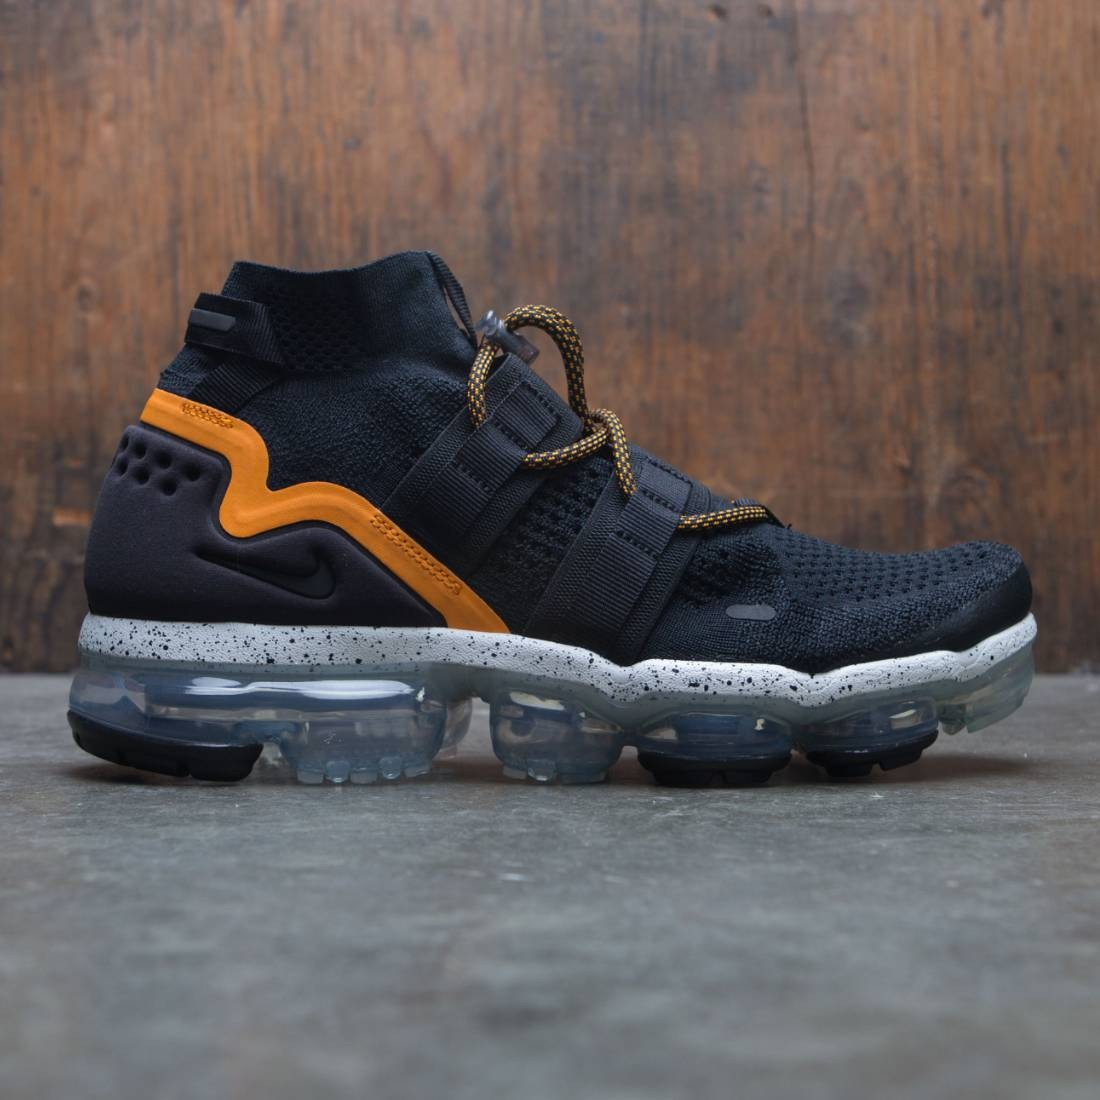 6e8313e712c0f nike men air vapormax fk utility black black orange peel